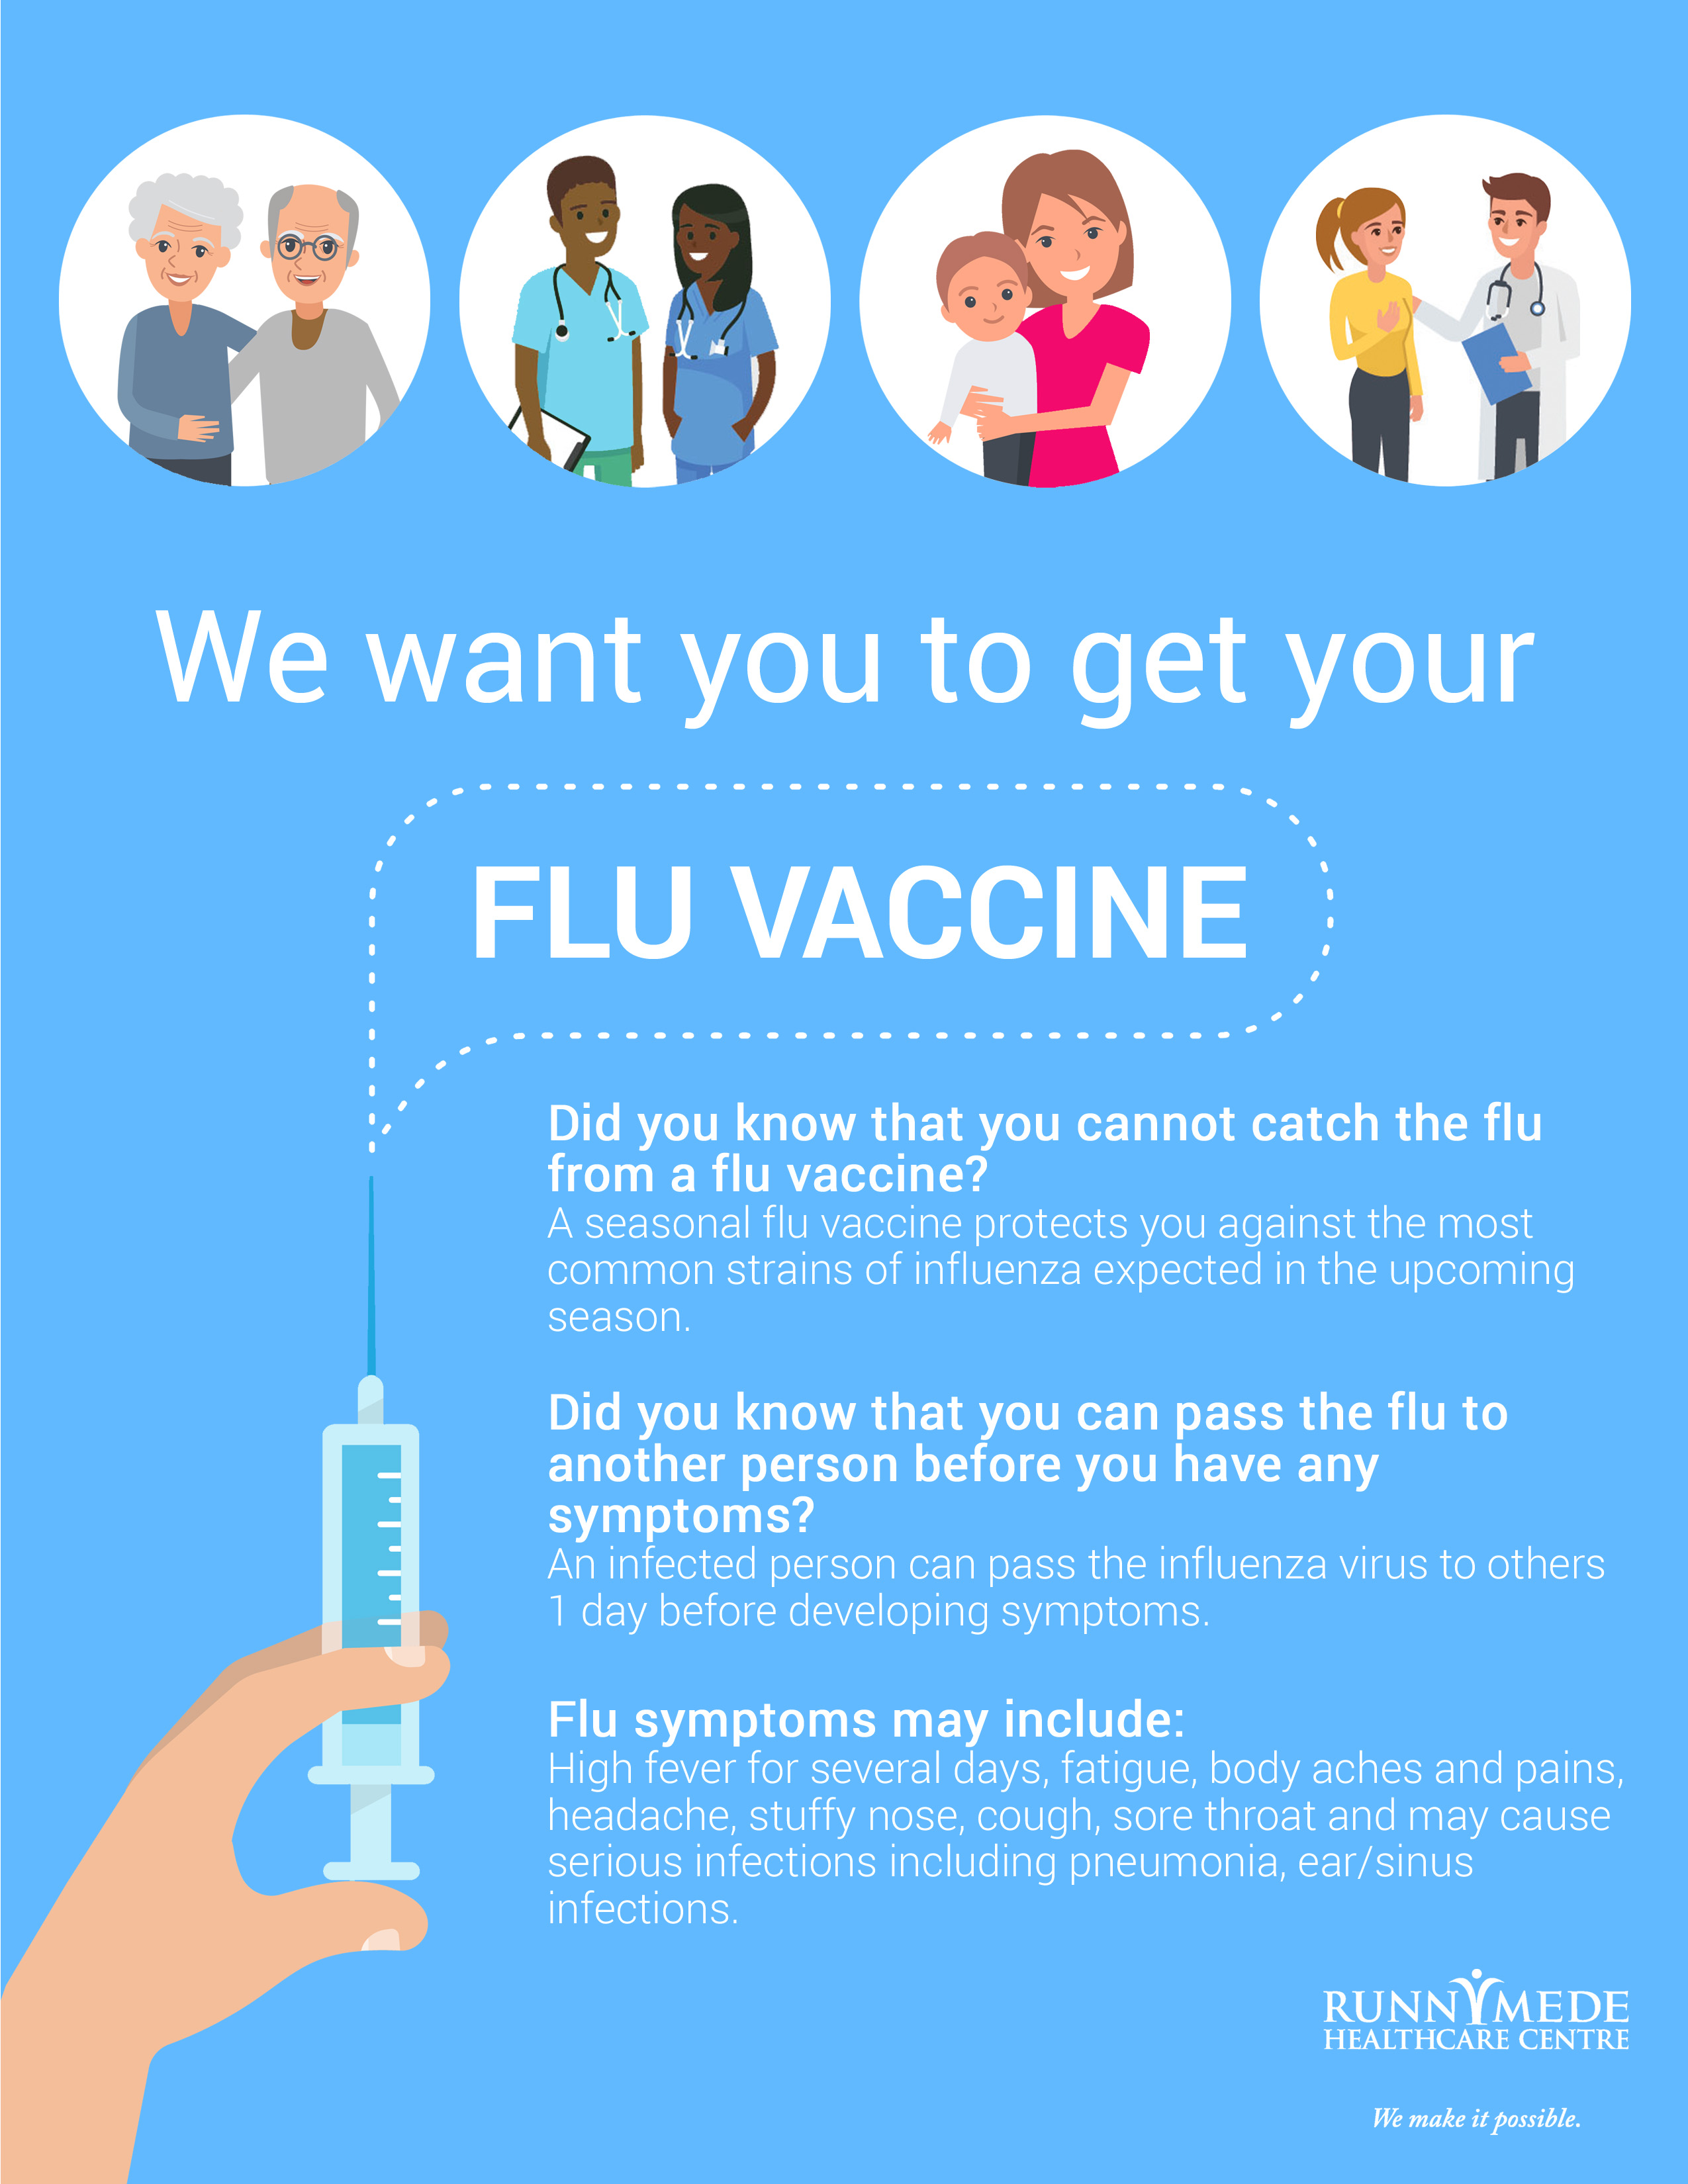 Runnymede :: We want you to get your flu vaccine